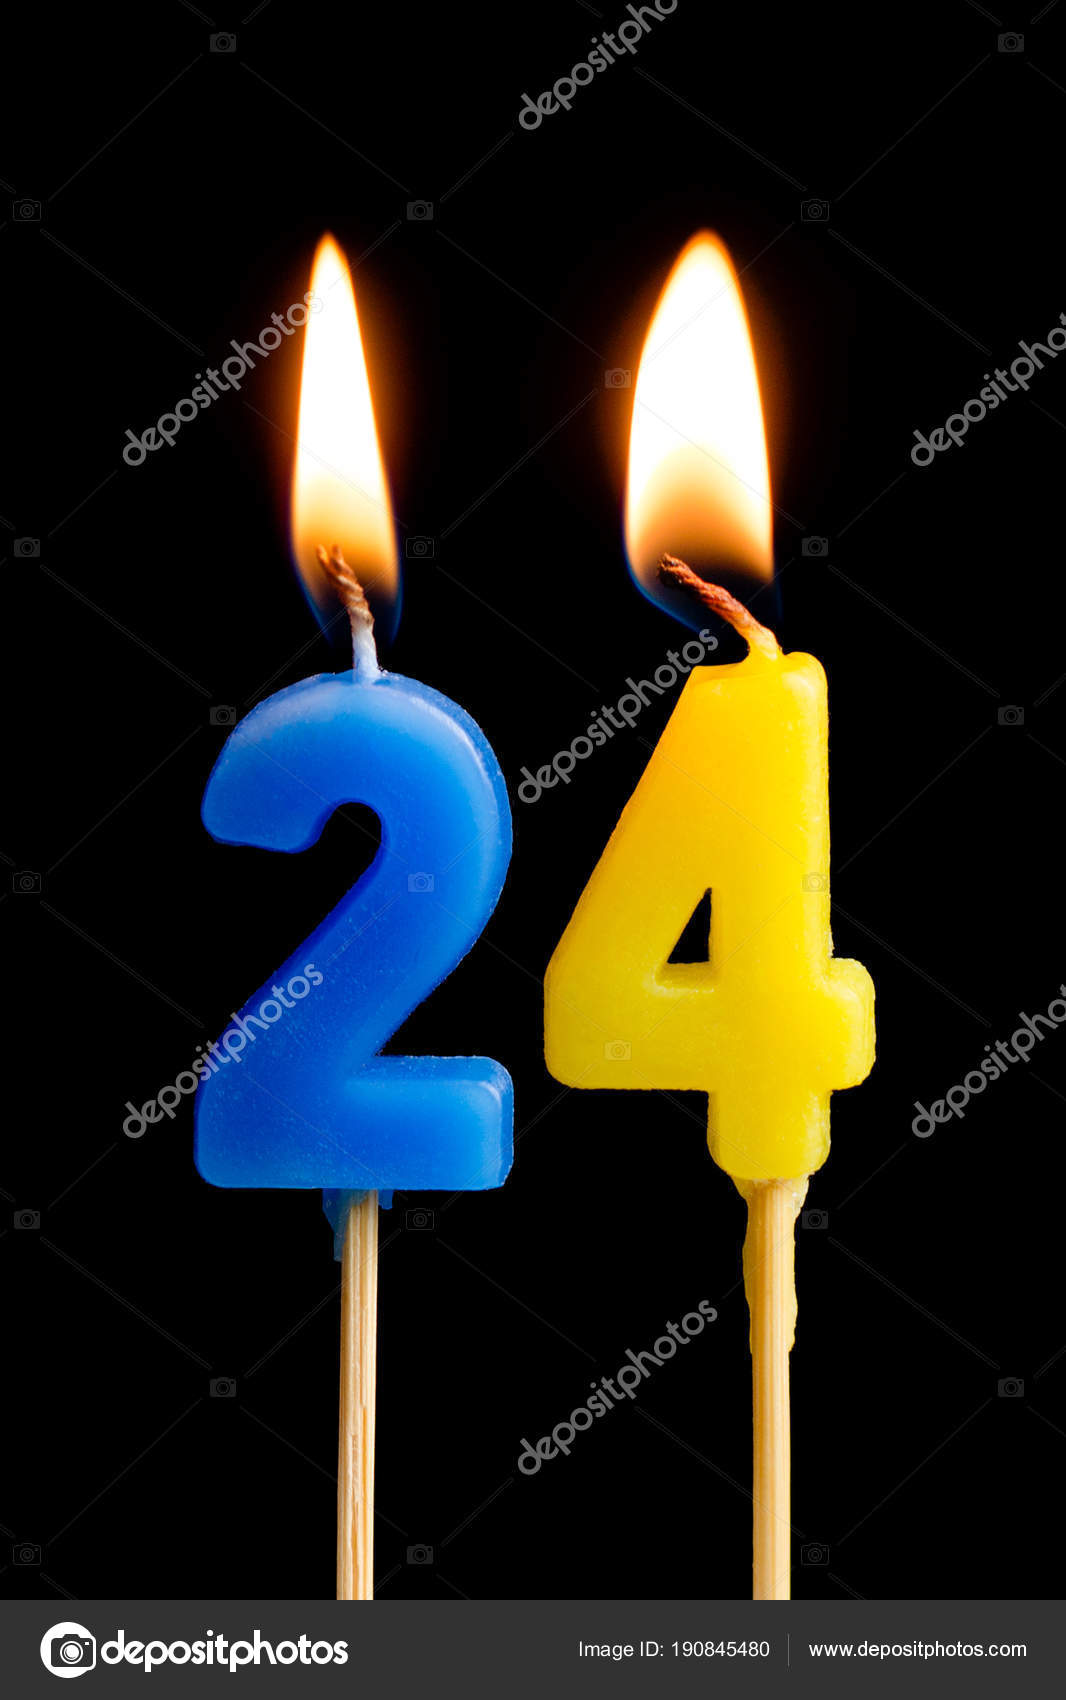 Burning Candles In The Form Of 24 Twenty Four Numbers Dates For Cake Isolated On Black